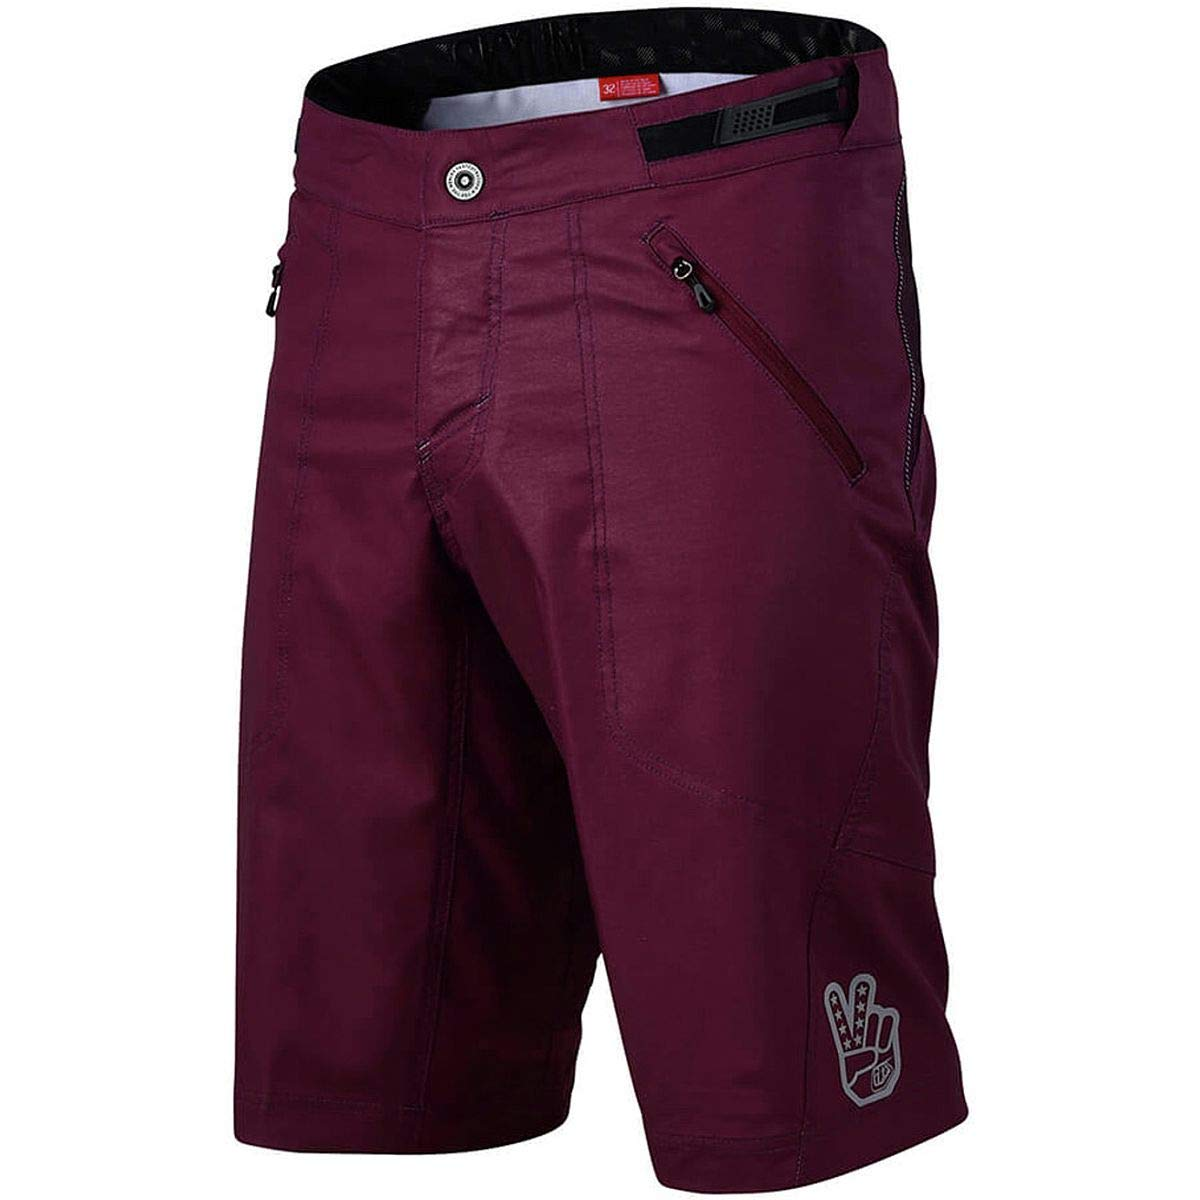 Troy Lee Designs Skyline Men's Off-Road BMX Cycling Shorts - Sangria / 38 by Troy Lee Designs